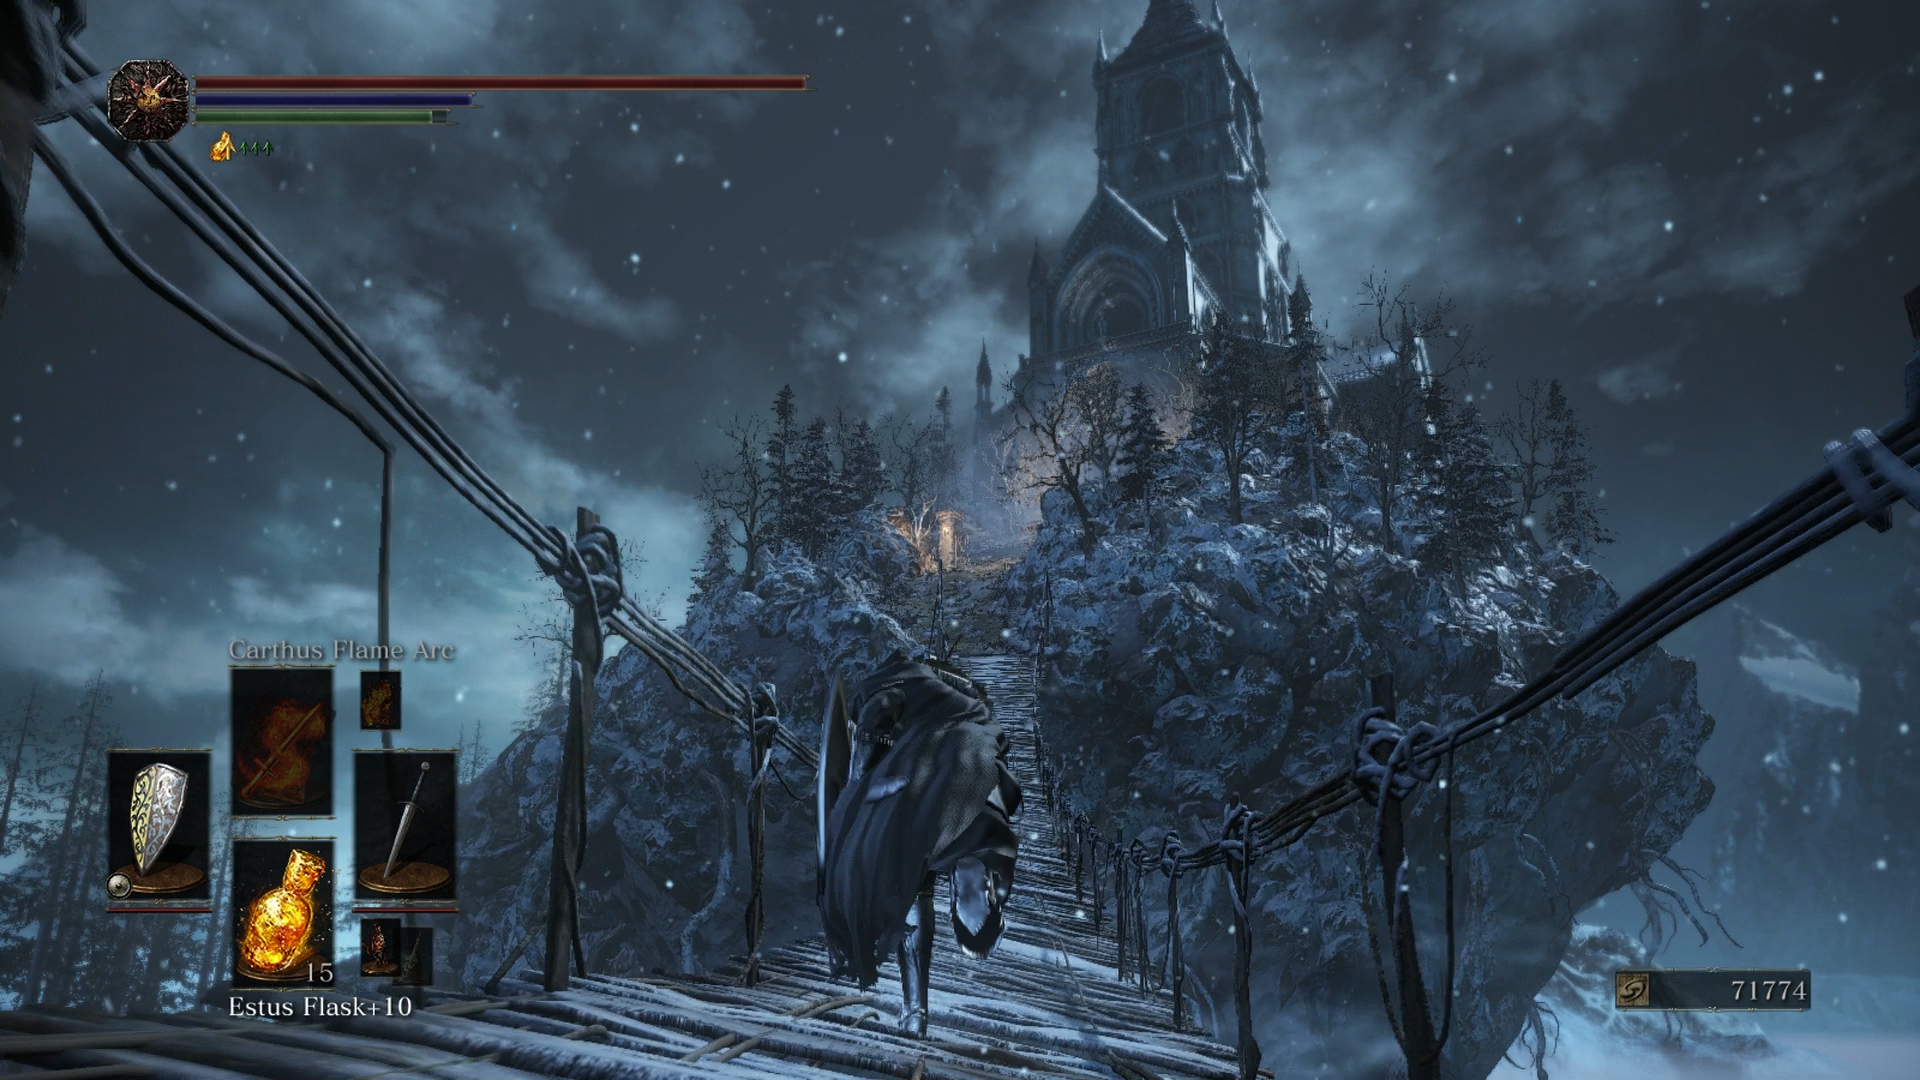 The chapel atop the hill is just one of the many breathtaking set pieces in Ashes of Ariandel